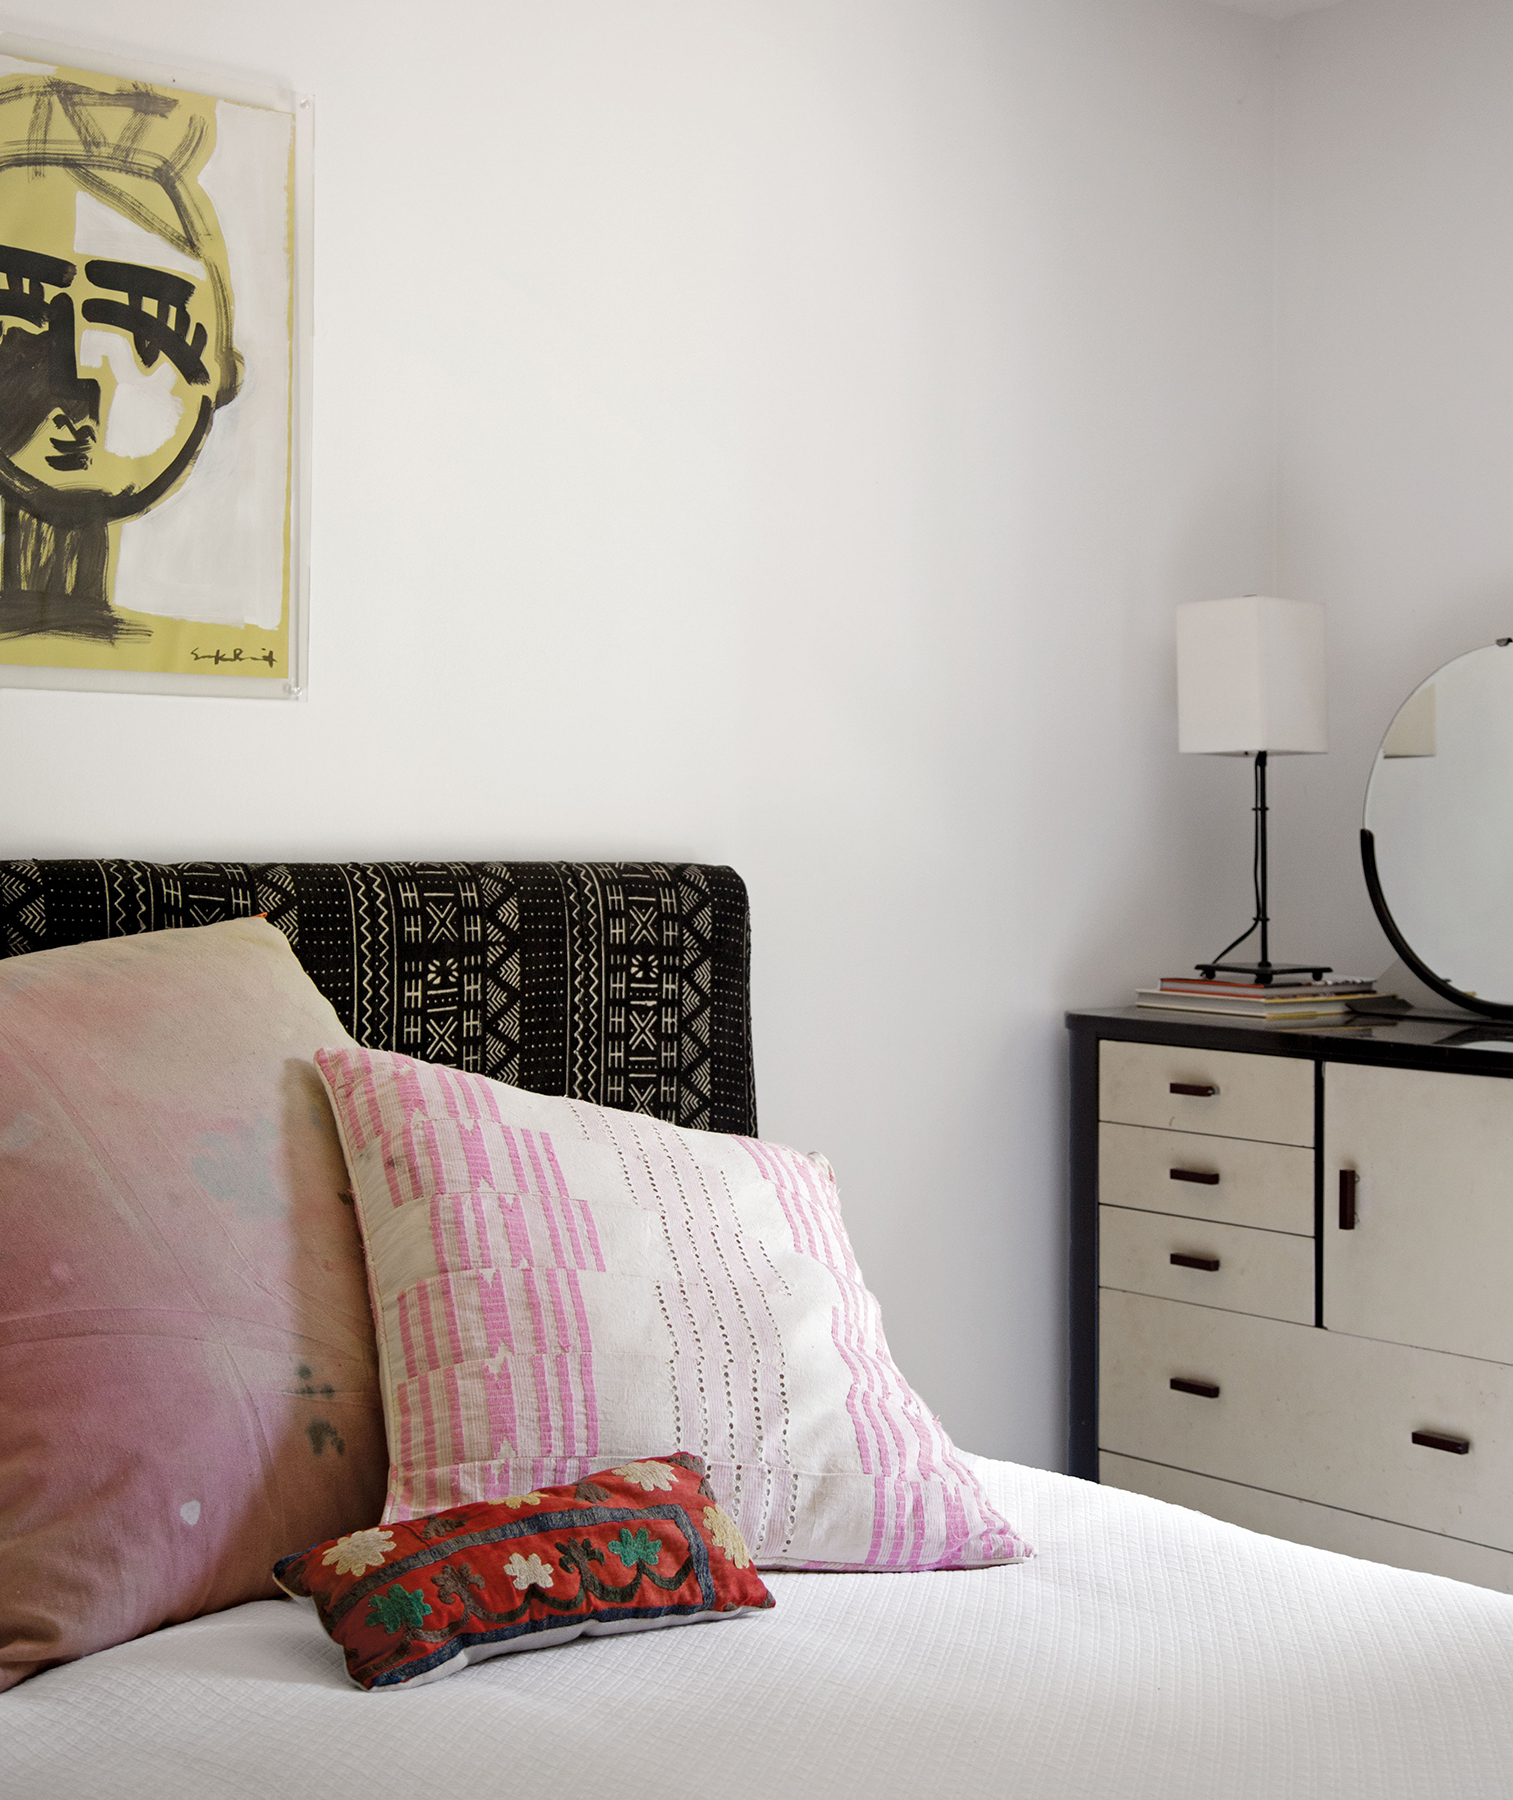 Bedroom with pillows and art with similar motifs